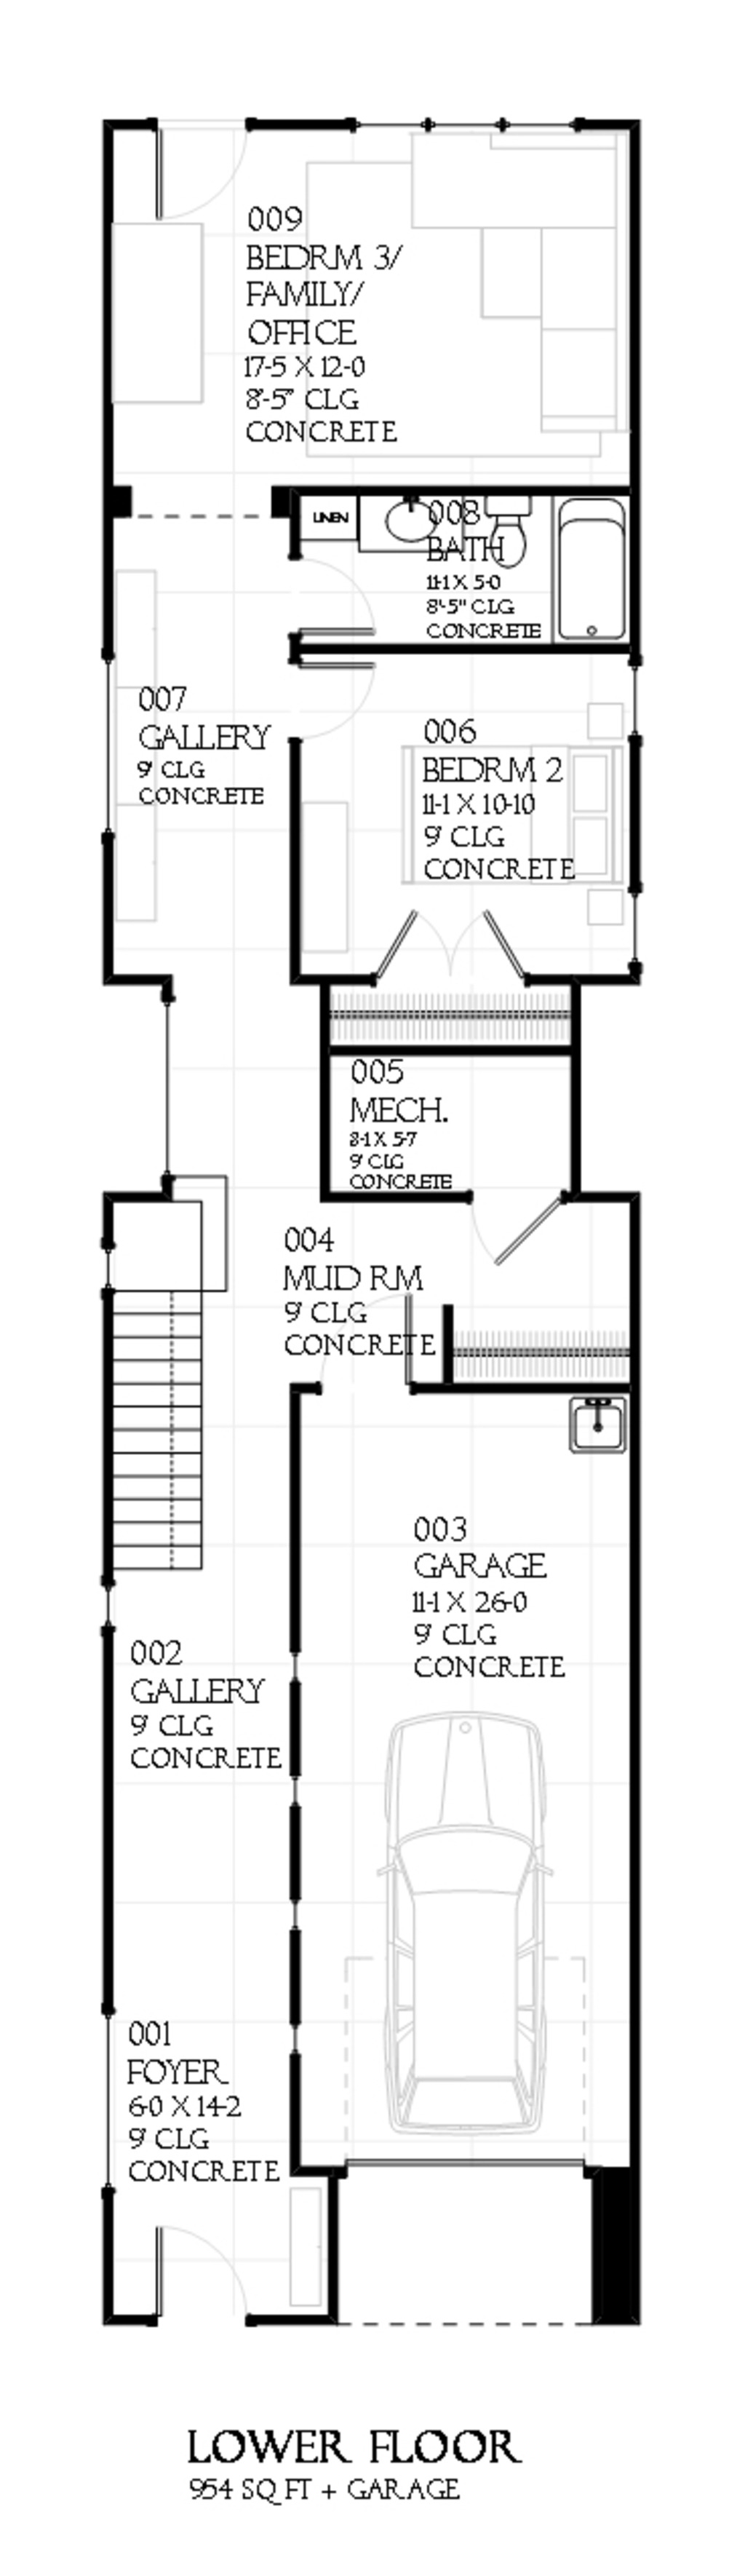 Building A House Plans Best Of Designs for Narrow Lots Houseplans Blog Houseplans